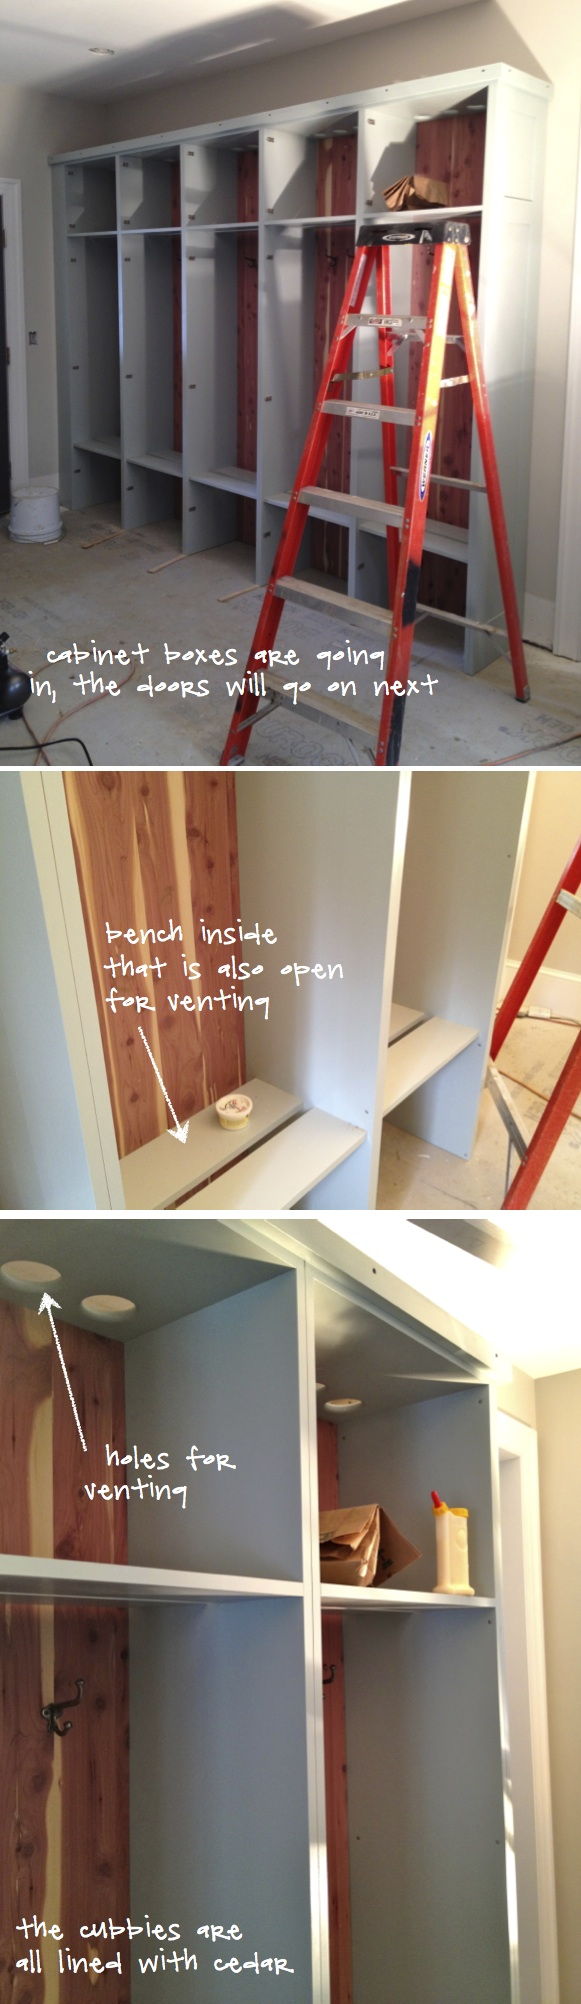 Blog Post 50_Kenney mudroom install jpg